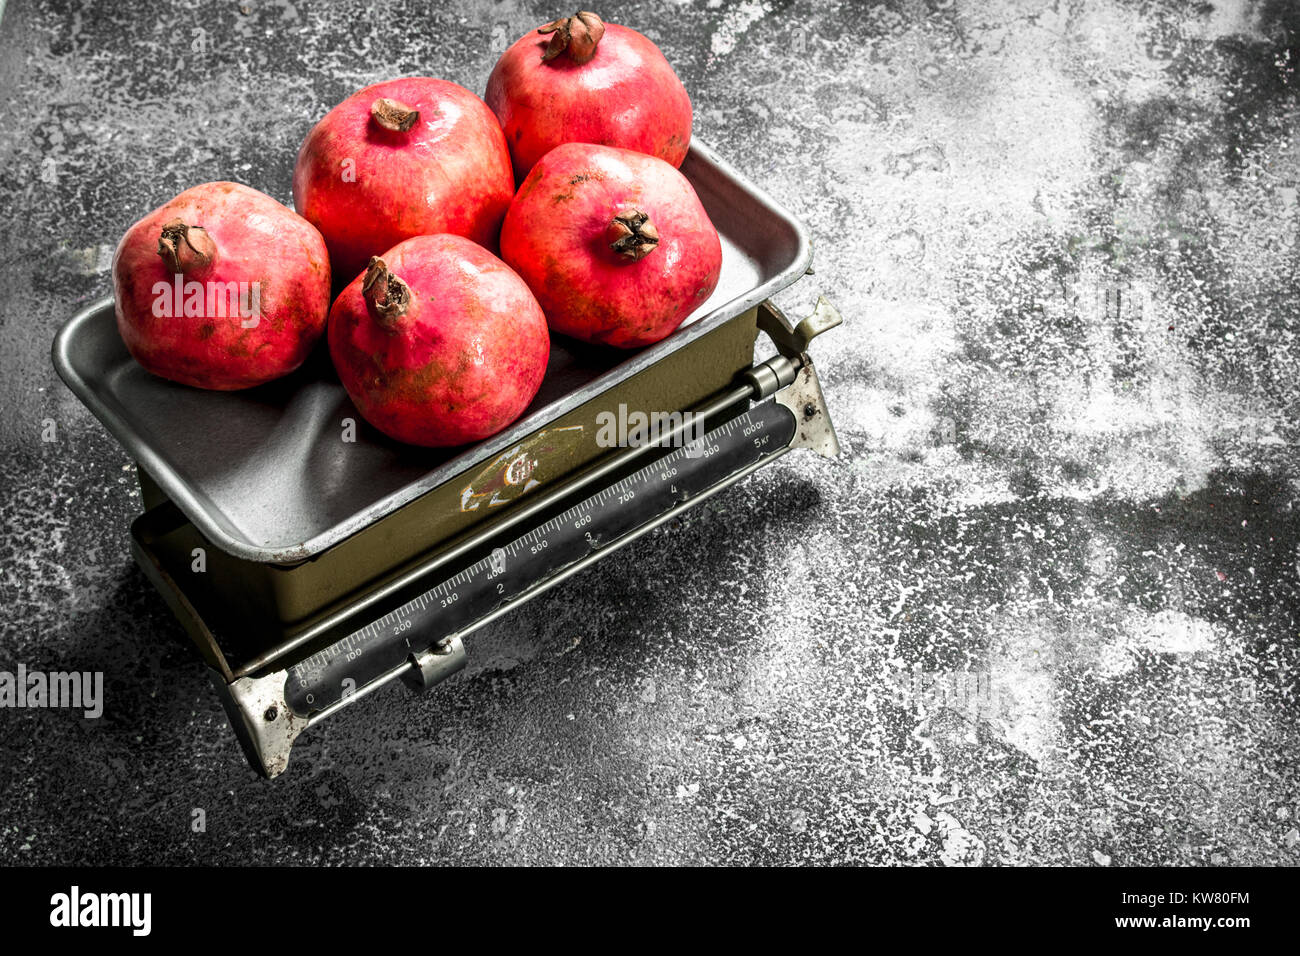 Ripe pomegranates on the scales. On a rustic background. - Stock Image